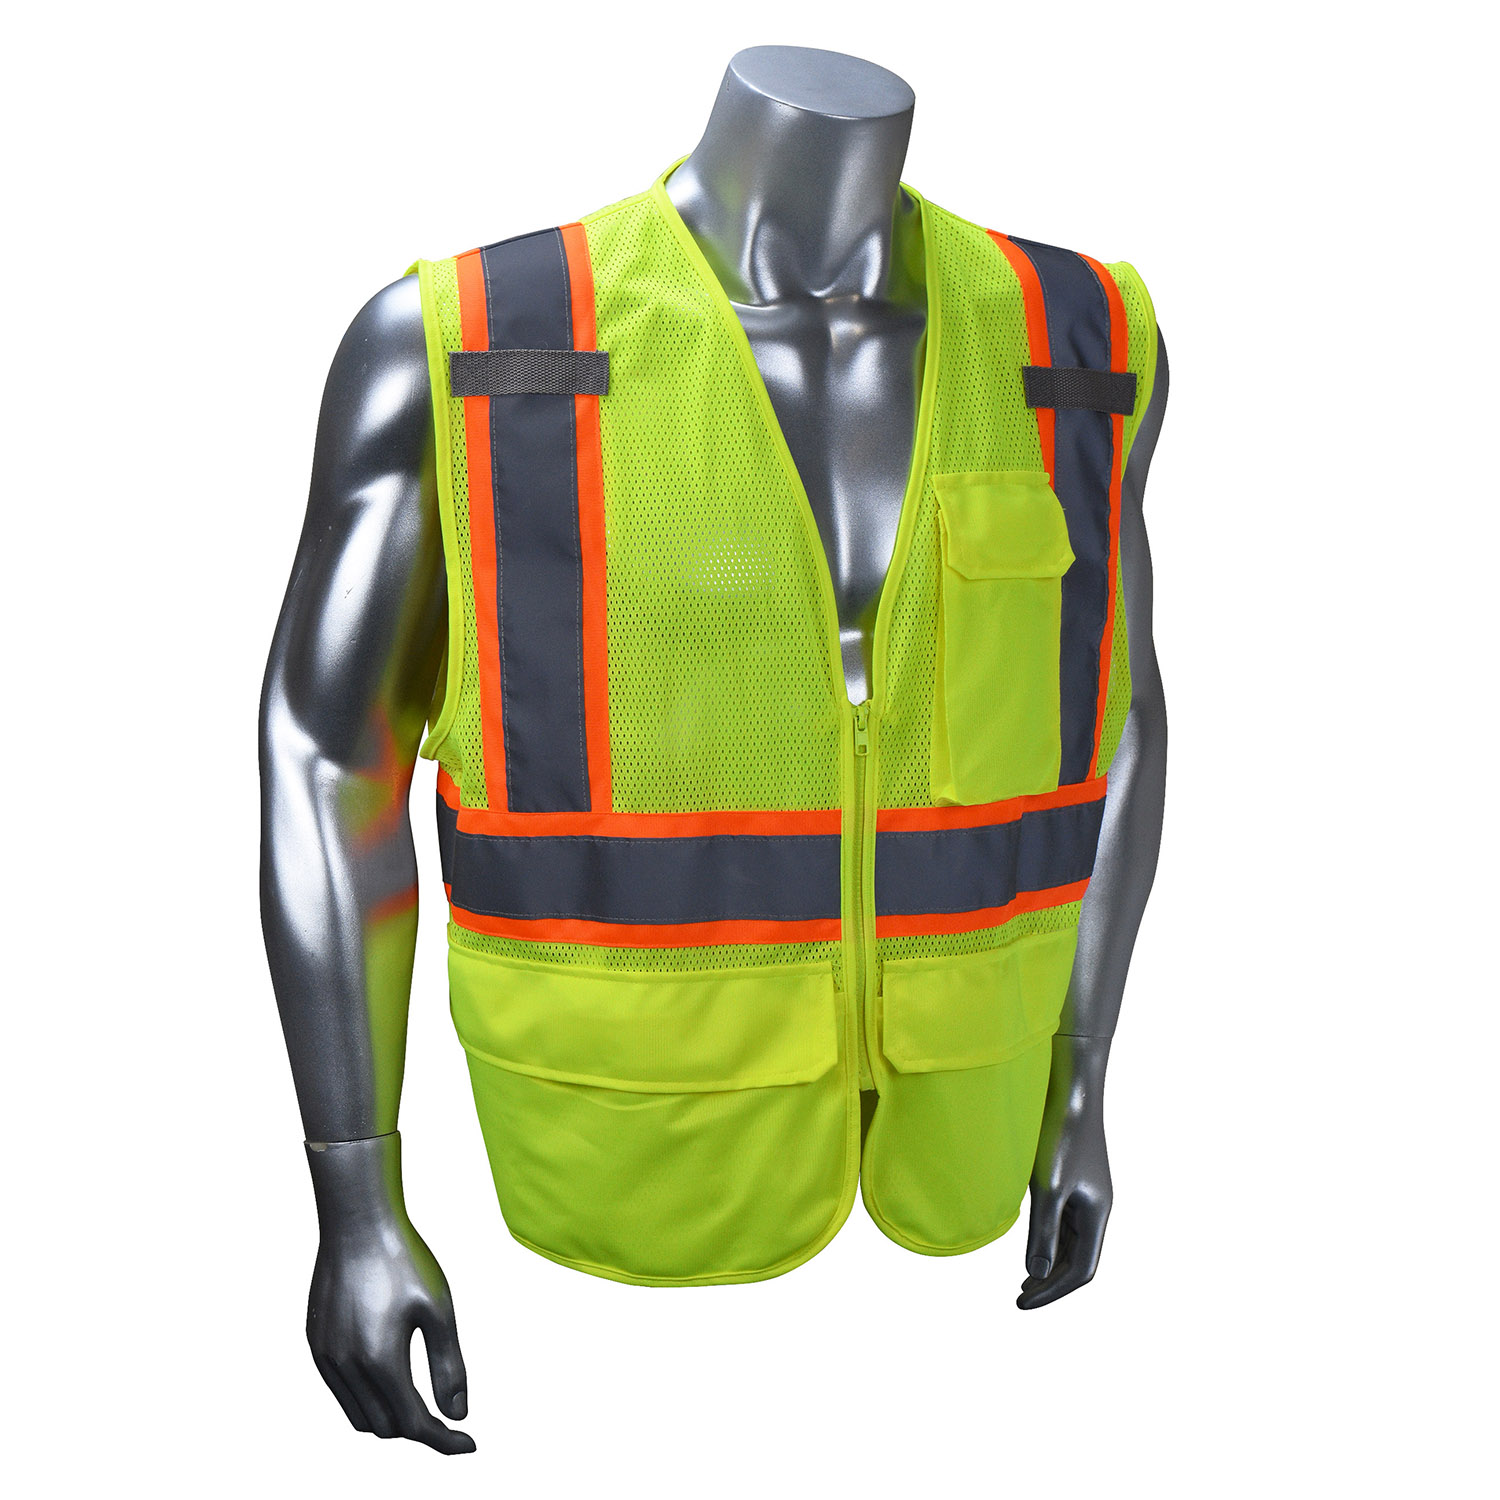 Radians SV225 Class 2 Self Extinguishing Two-Tone Trim Safety Vest